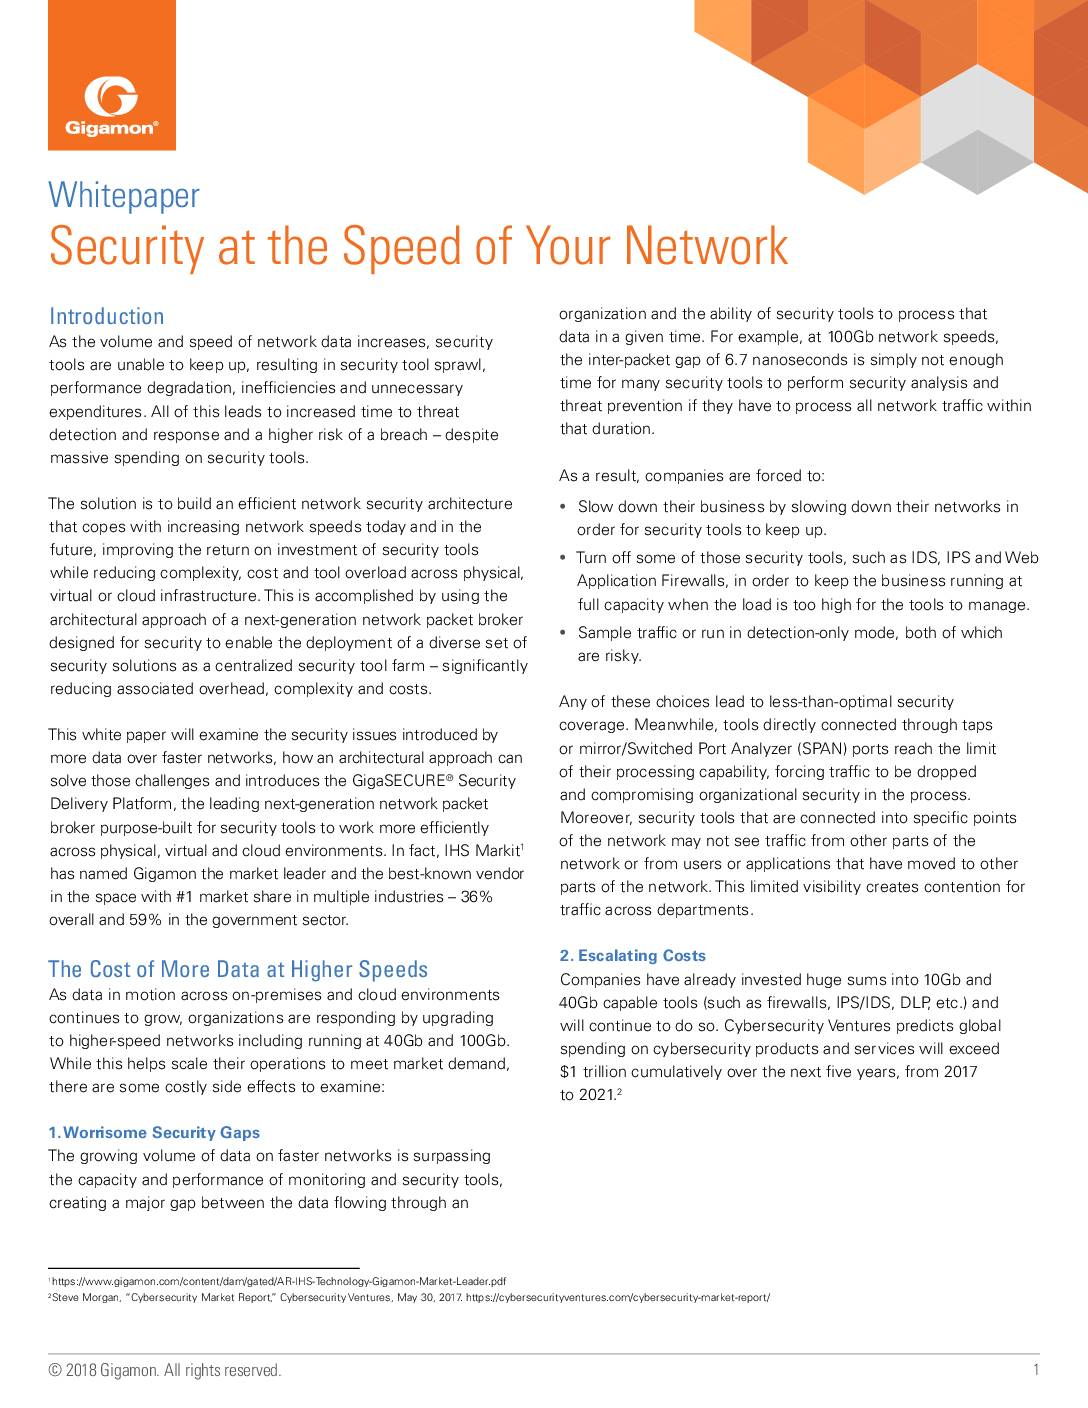 Featured image for Security at the Speed of Your Network